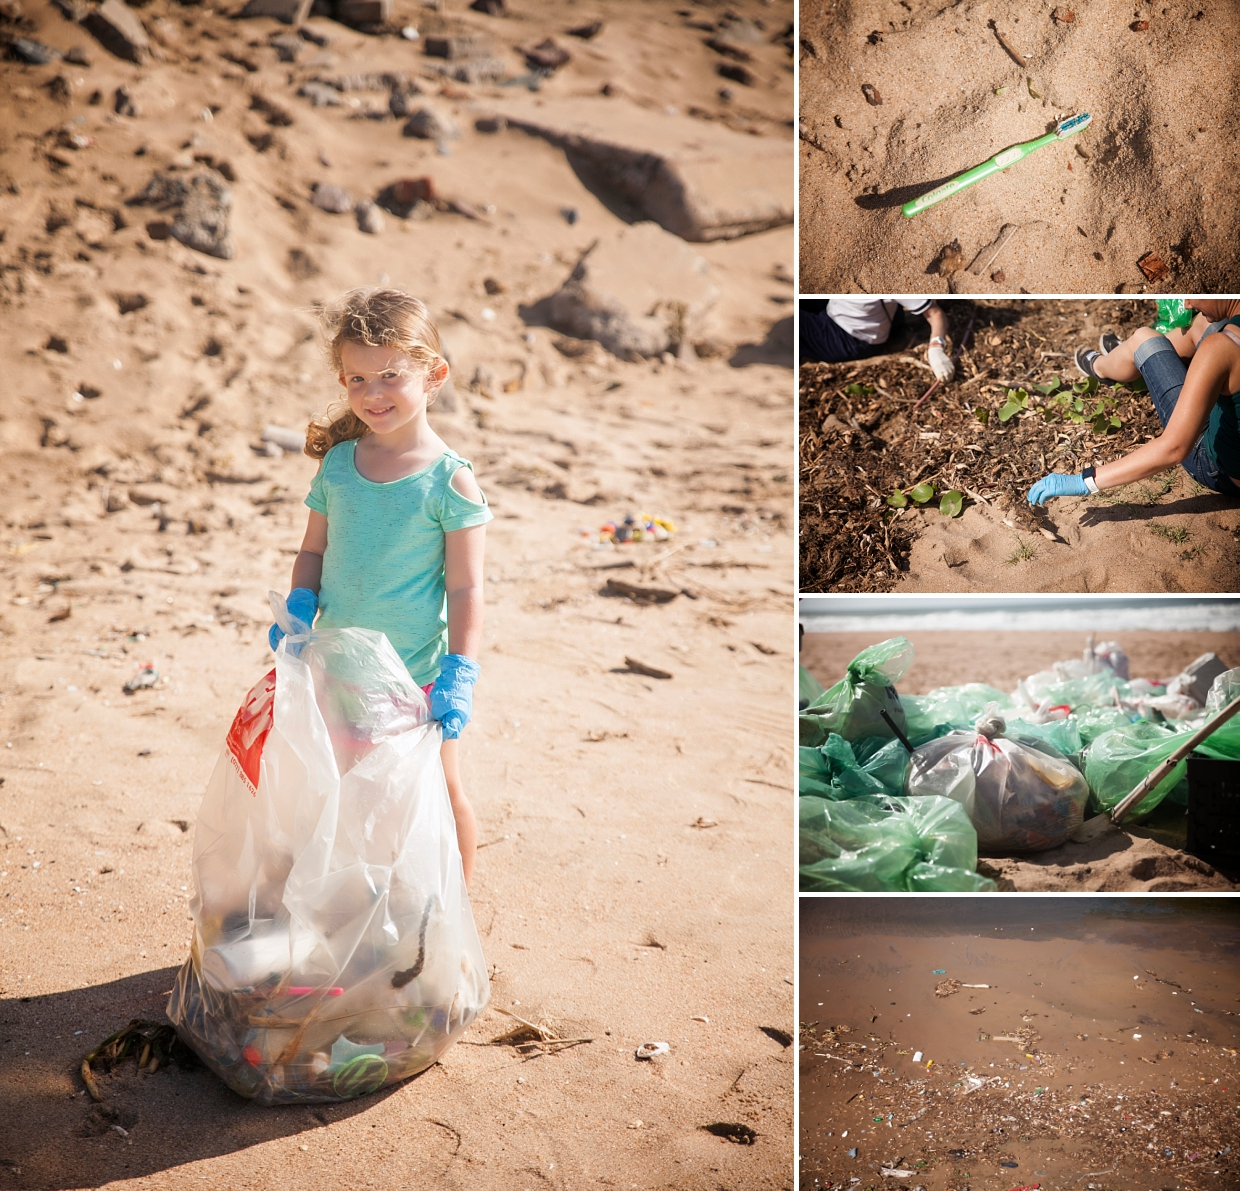 Durban beach clean up